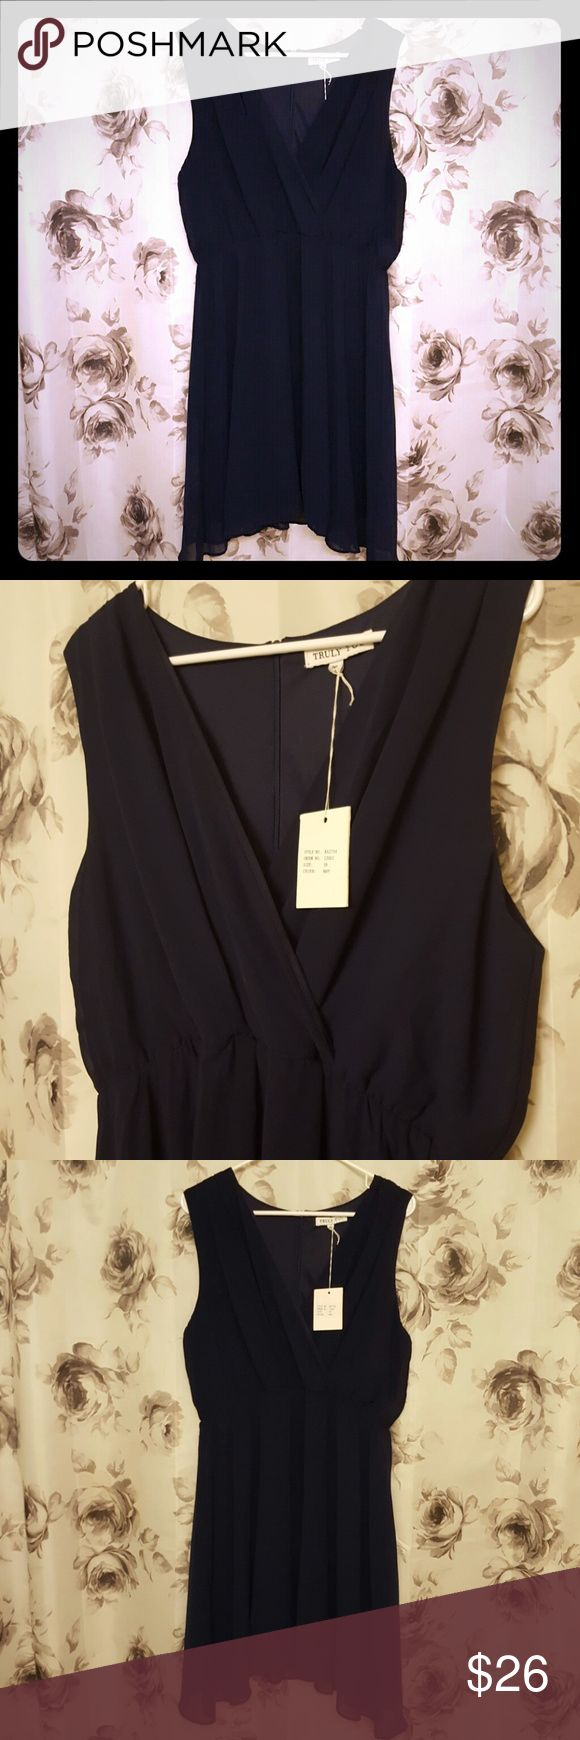 Summer Occasion Dress Elegant occasion dress, perfect for summmer weddings, 100% polyester styled like chiffon, navy blue, full slip, zip back closure, size 18, never worn, new with tags, non-smoking home. Truly You Dresses